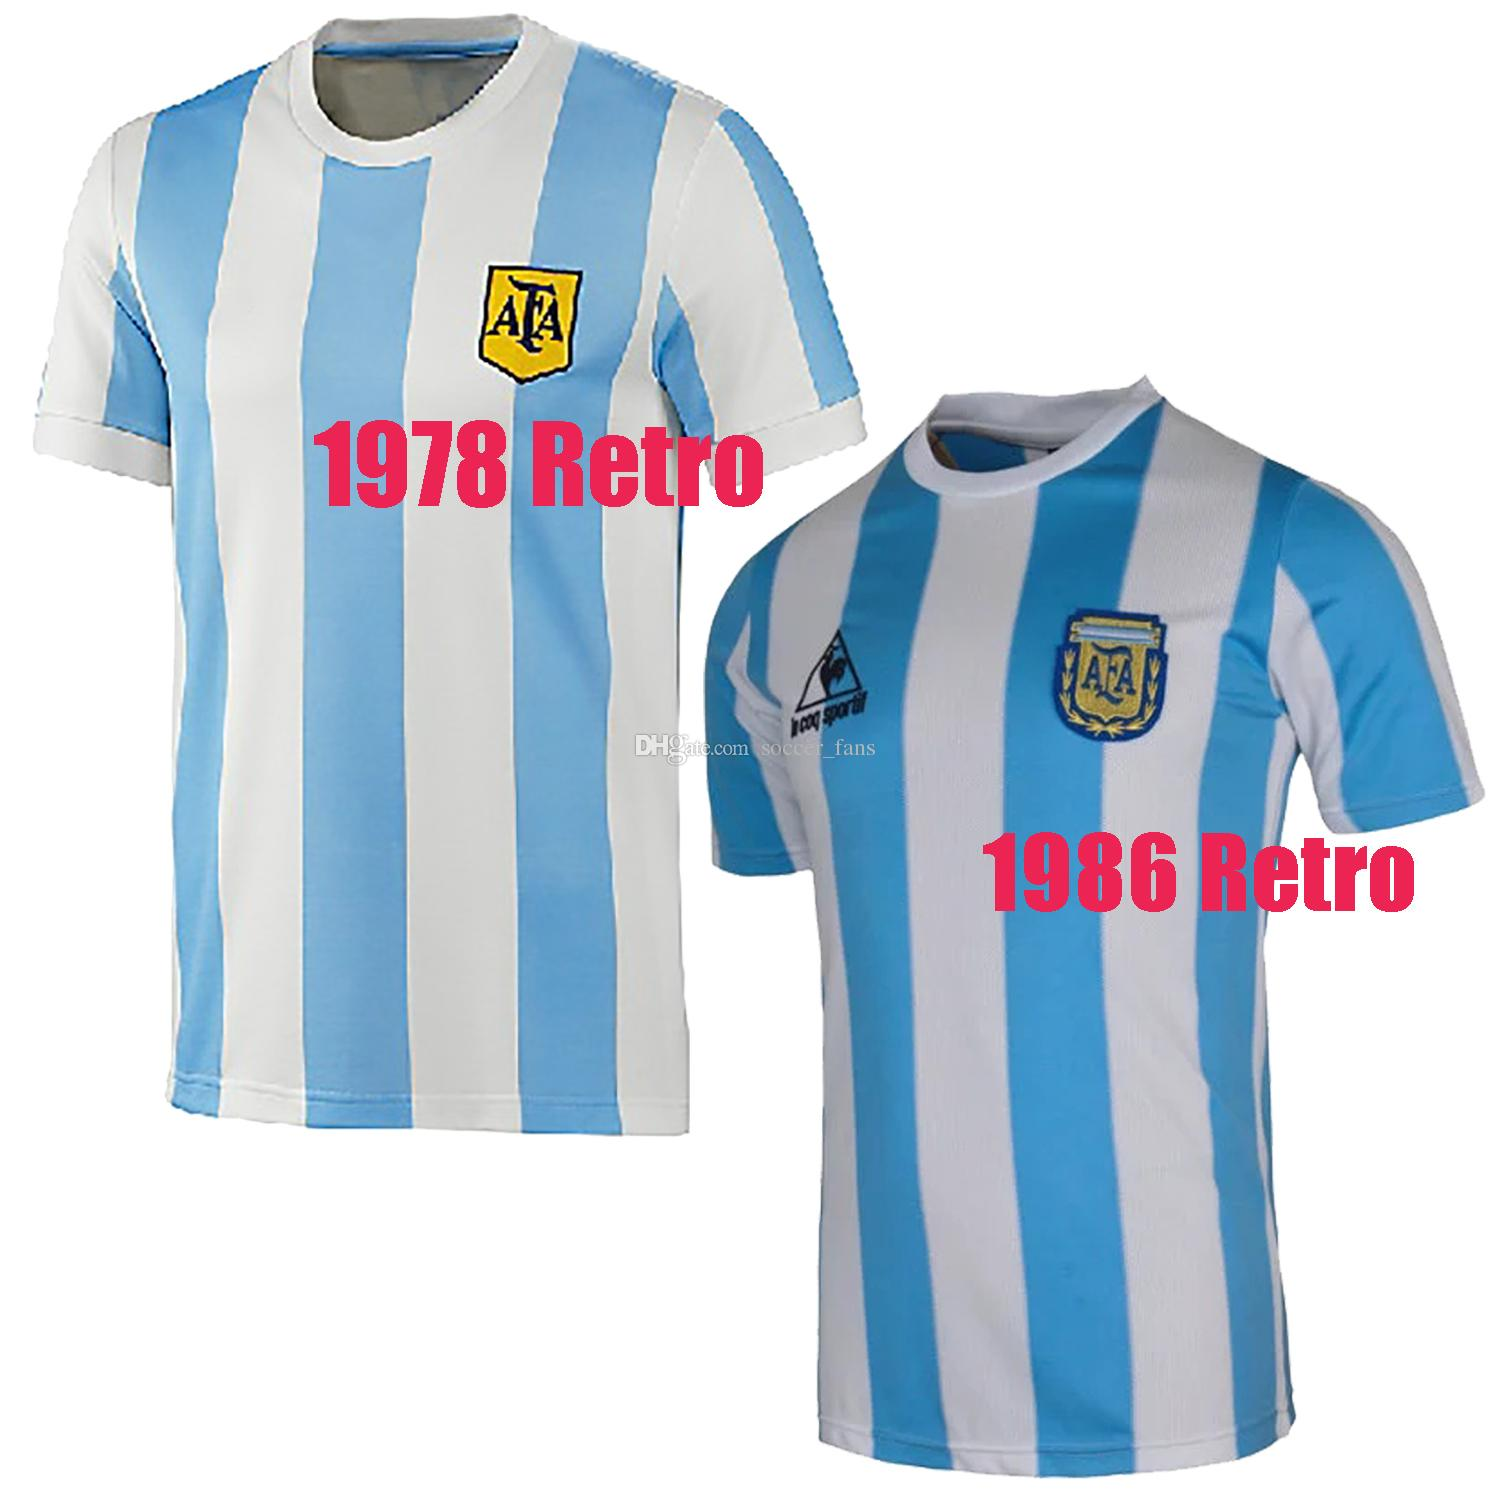 7c9e6e80f49 2019 Retro Version 1986 Argentina Retro Home Soccer Jersey 10 Messi Maradona  CANIGGIA 1978 Quality Football Shirt Uniforms Football Jerseys Shirt From  ...